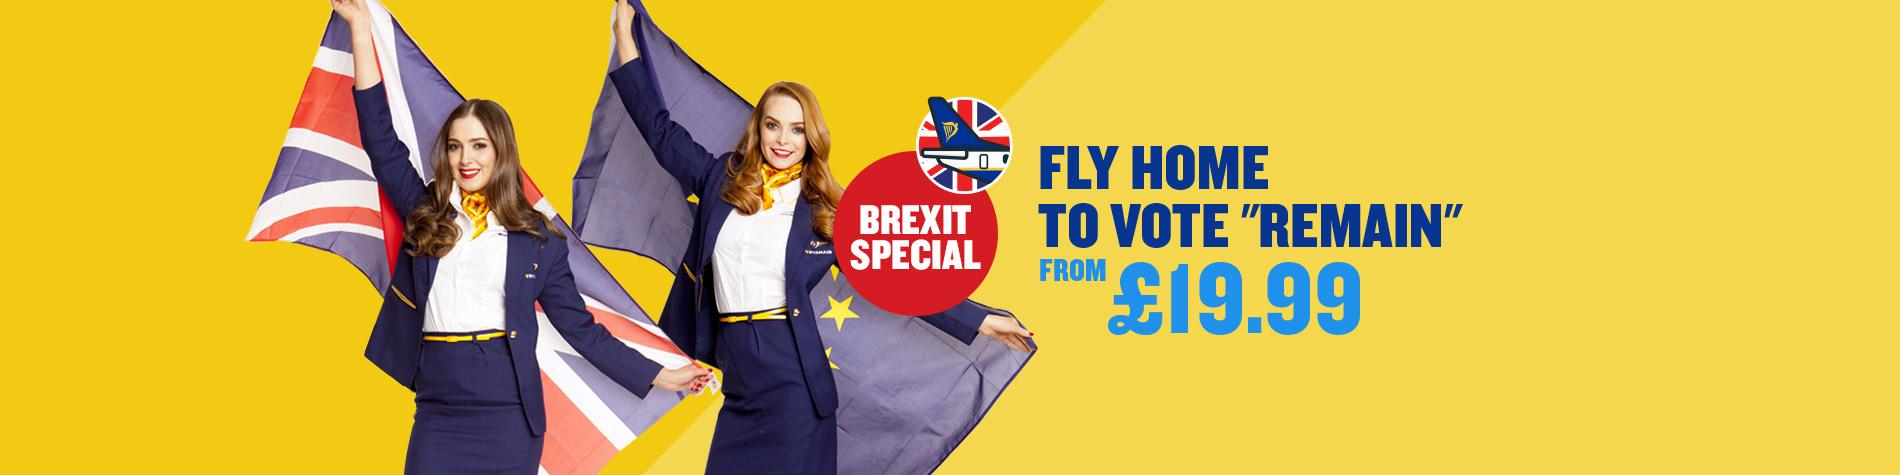 Ryanair Fly Home To Vote advertisement. Image; Ryanair